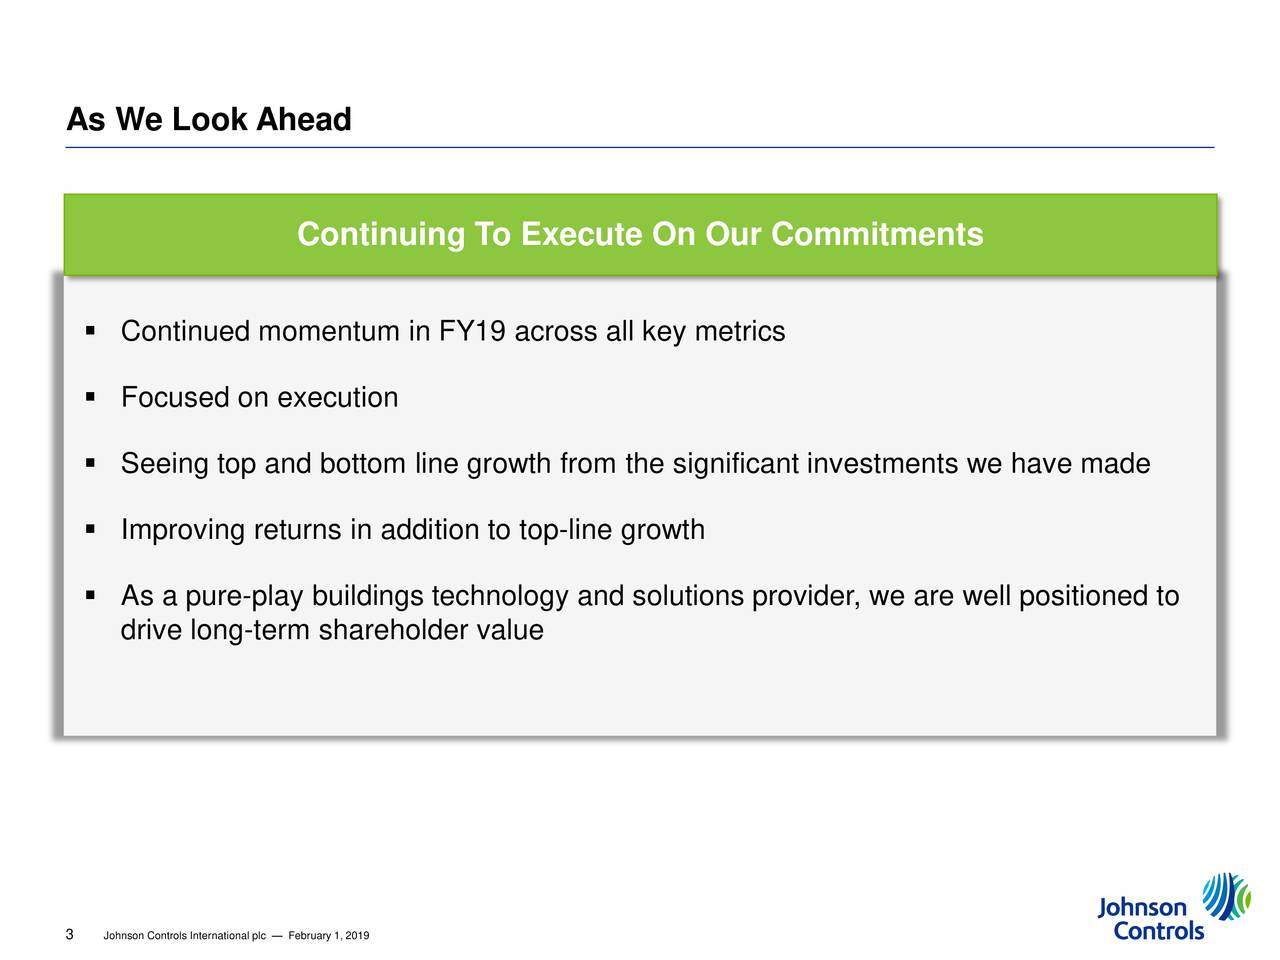 Continuing To Execute On Our Commitments  Continued momentum in FY19 across all key metrics  Focused on execution  Seeing top and bottom line growth from the significant investments we have made  Improving returns in addition to top-line growth  As a pure-play buildings technology and solutions provider, we are well positioned to drive long-term shareholder value 3 Johnson Controls International plc — February 1, 2019